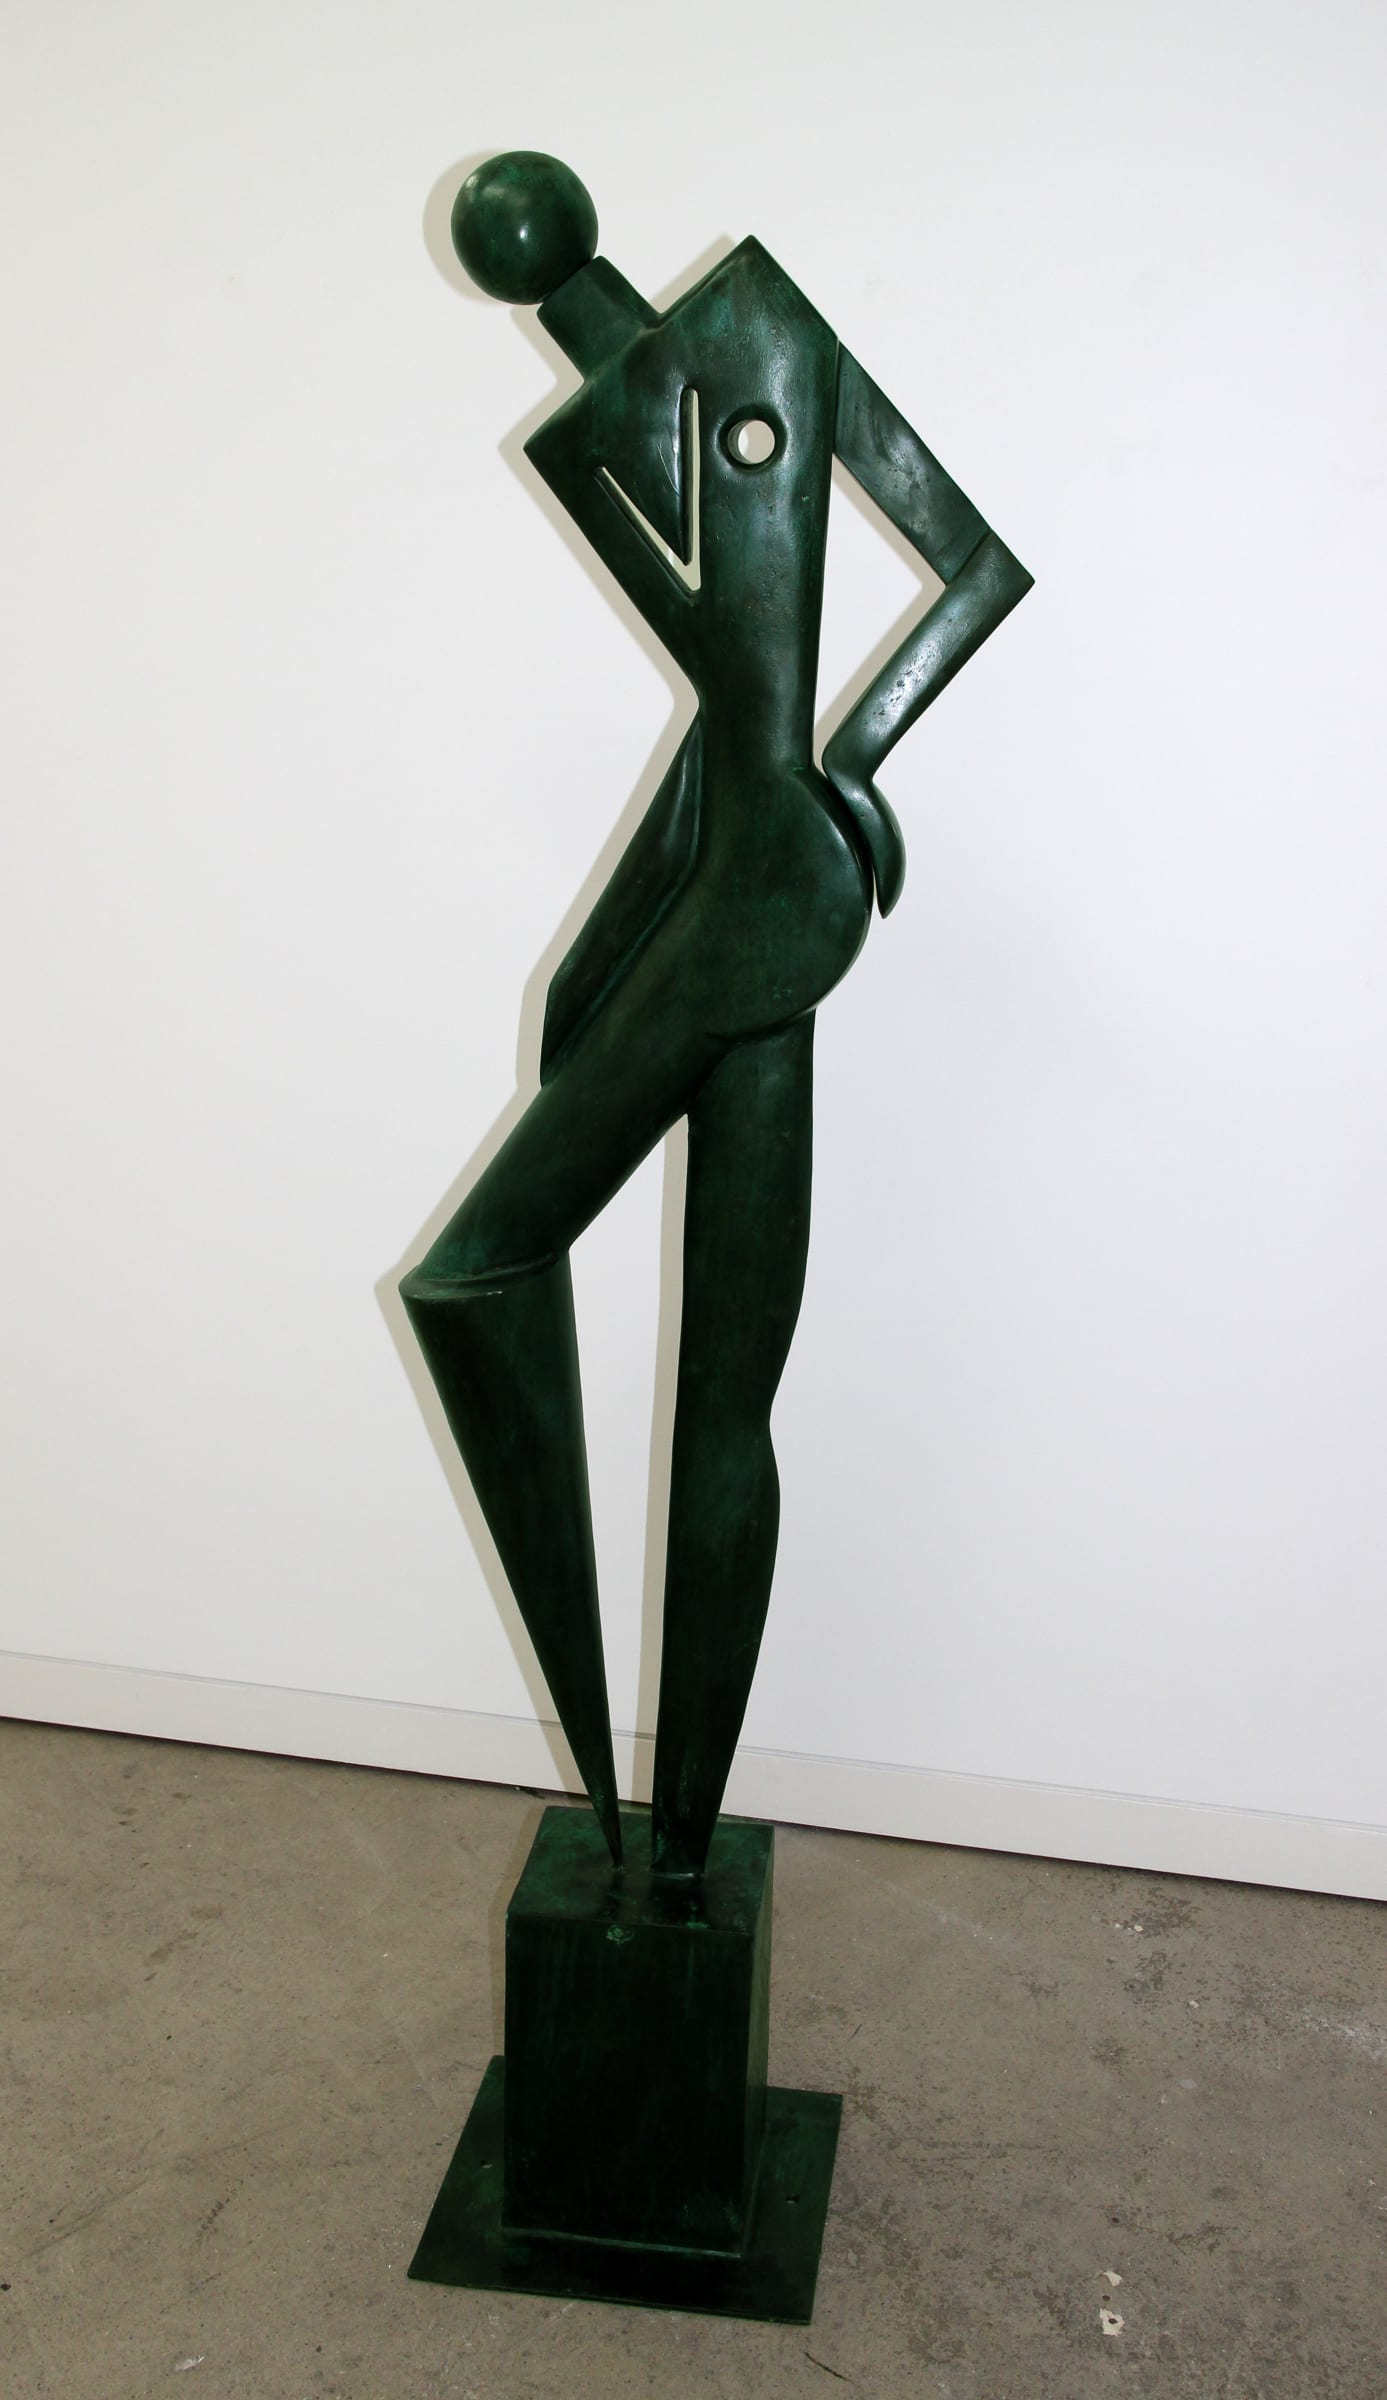 <span class=&#34;link fancybox-details-link&#34;><a href=&#34;/exhibitions/59/works/artworks4993/&#34;>View Detail Page</a></span><div class=&#34;medium&#34;>Cast Patinated Bronze</div> <div class=&#34;dimensions&#34;>78.7 x 14.6 x 13.4 in<br />200 x 37 x 34 cm</div>